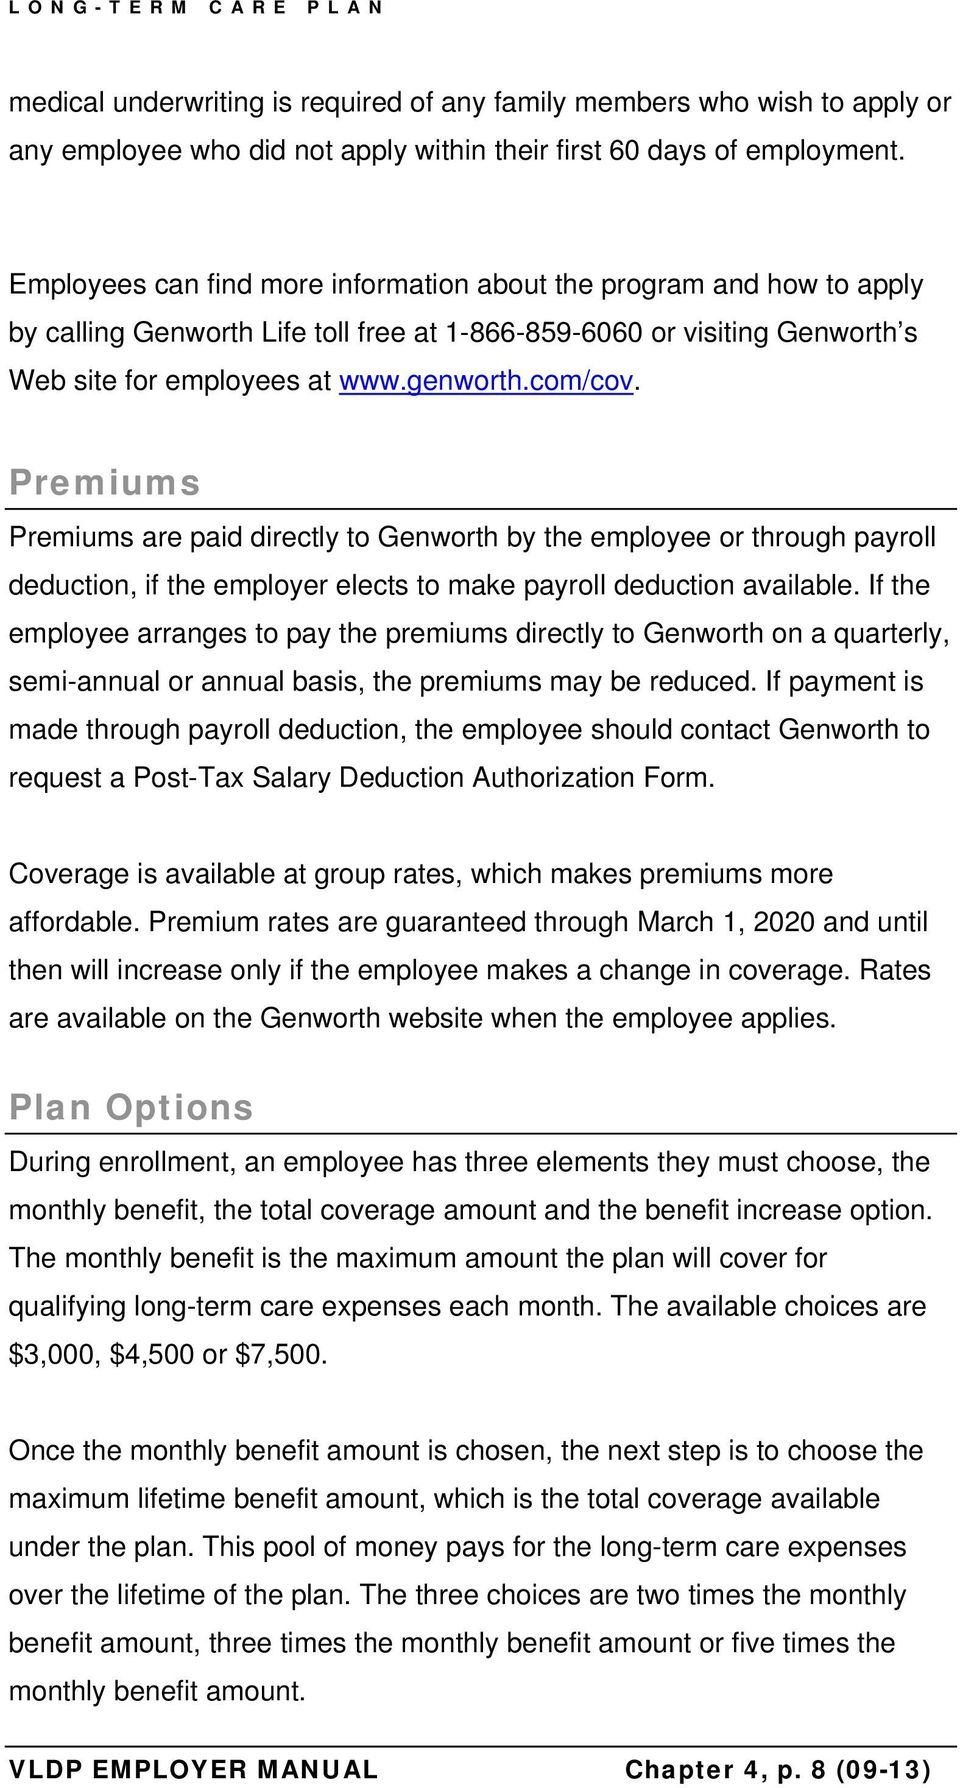 Premiums Premiums are paid directly to Genworth by the employee or through payroll deduction, if the employer elects to make payroll deduction available.